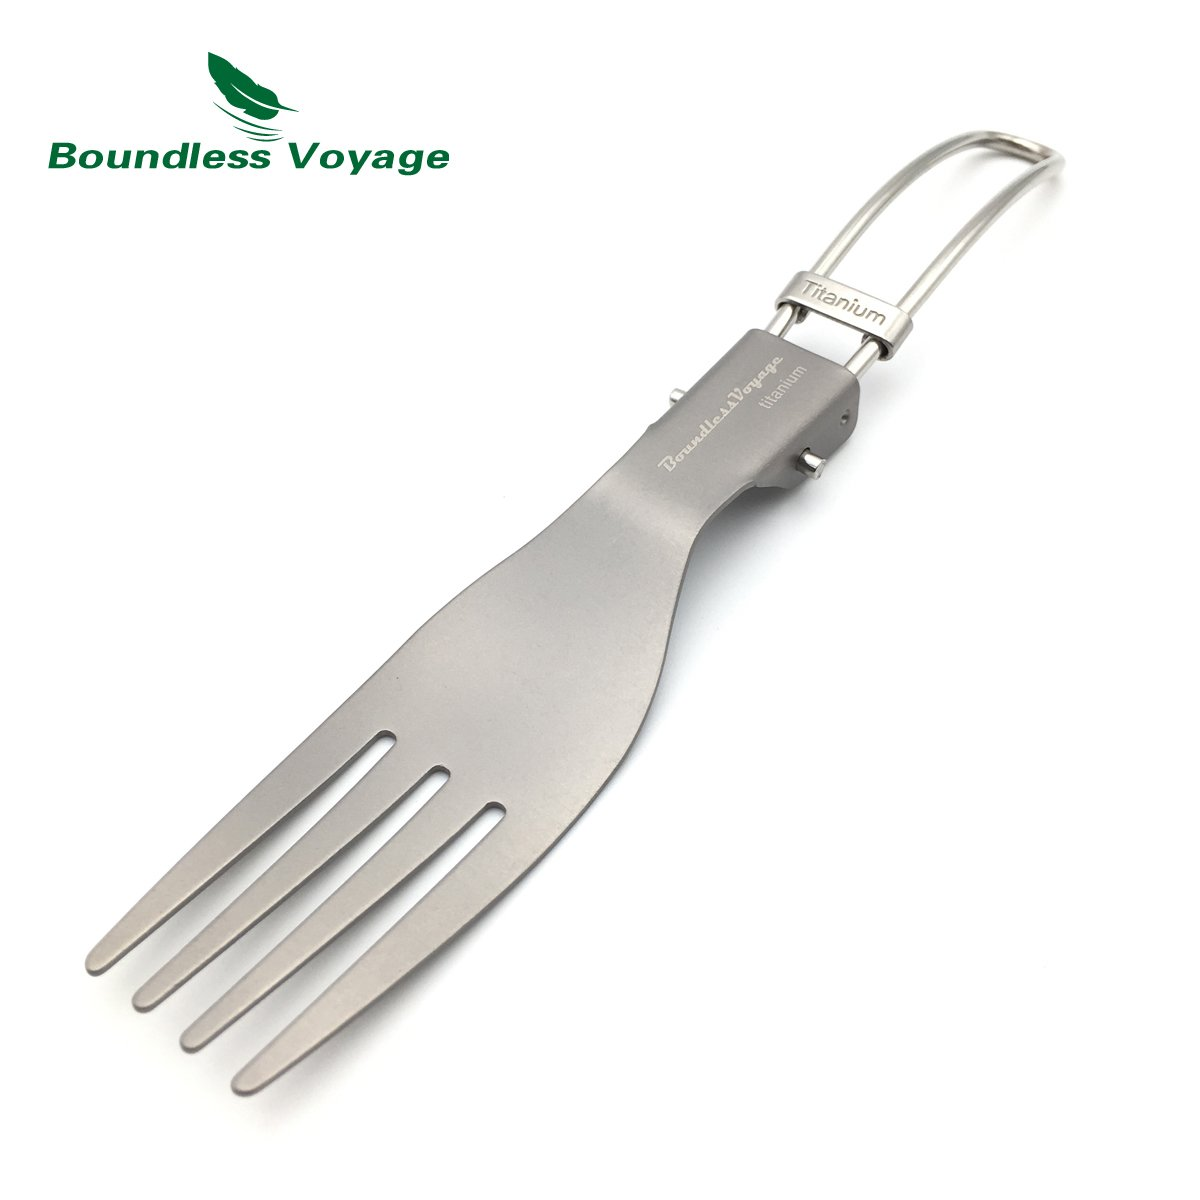 Boundless Voyage Folding Titanium Cultery Ultralight Fork Spoon Chopsticks and Spork for Camping